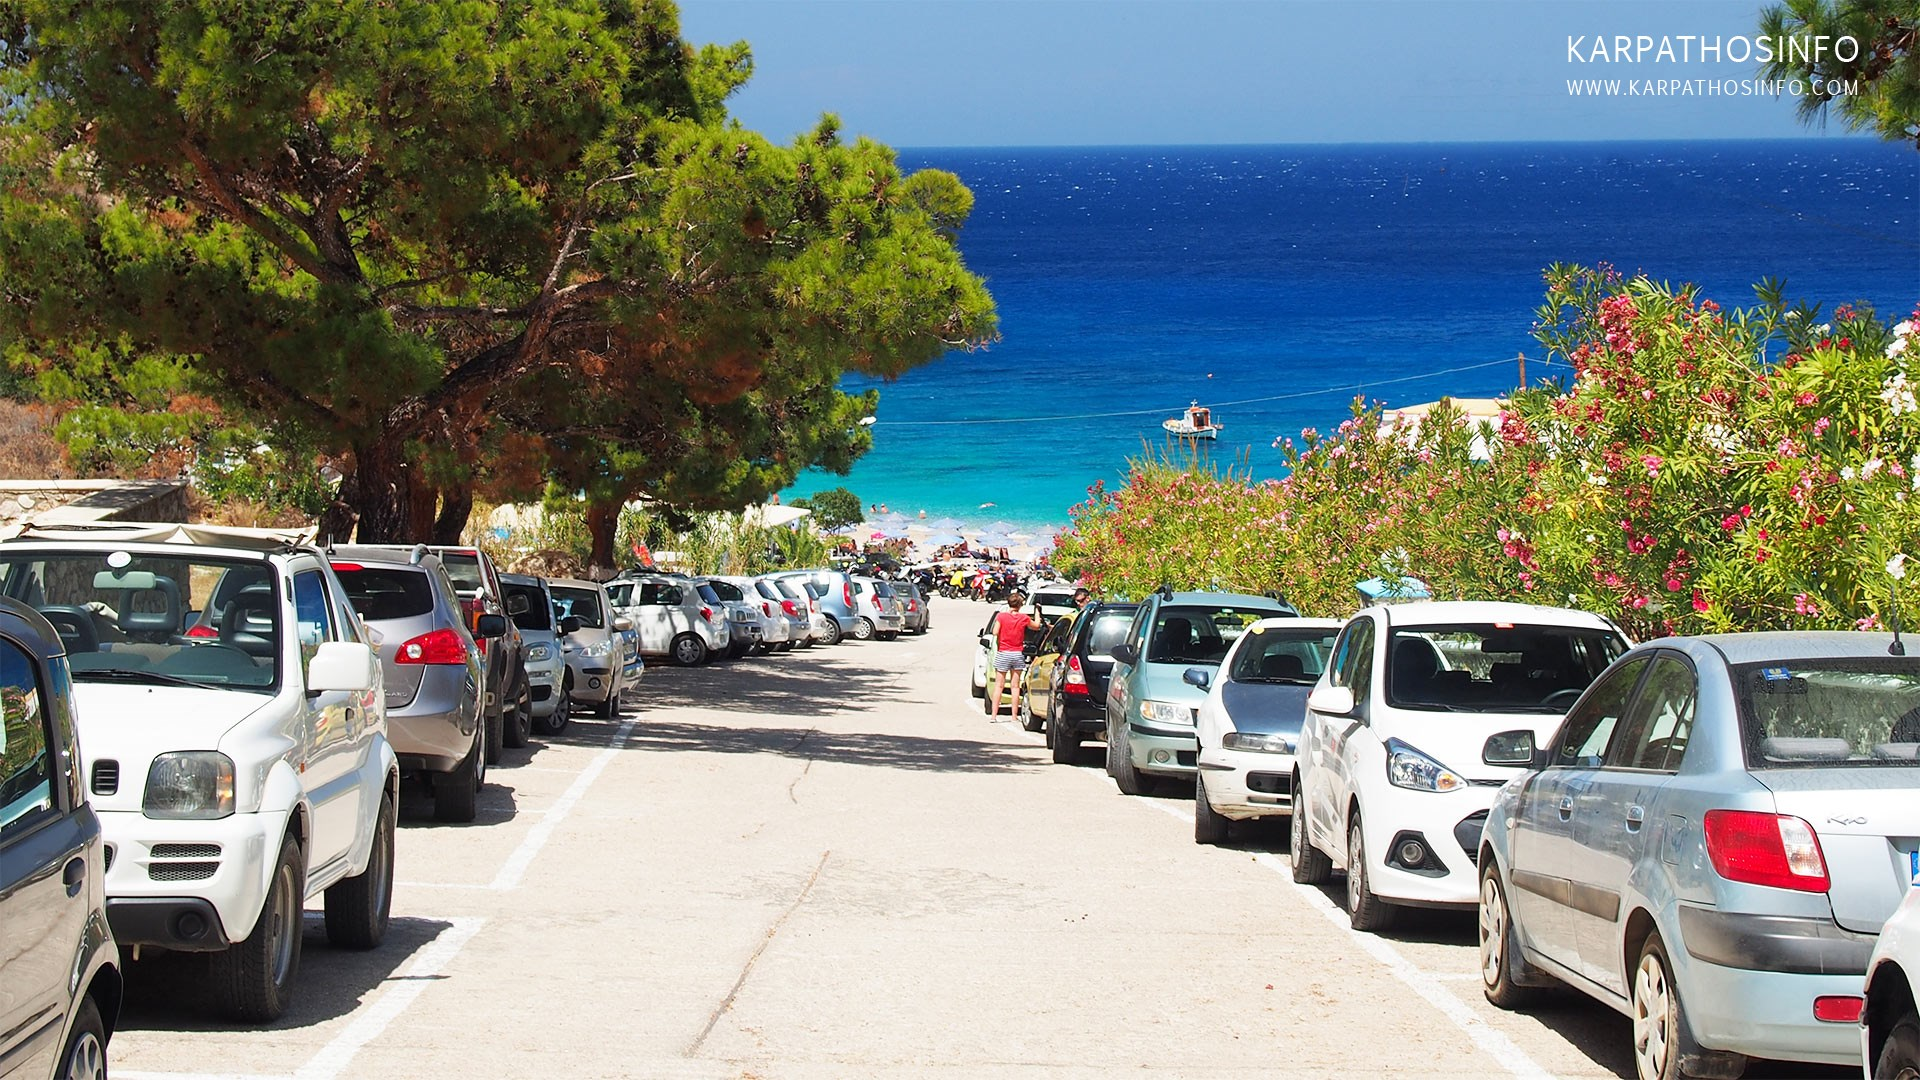 images/slider/karpathos-rent-a-car.jpg